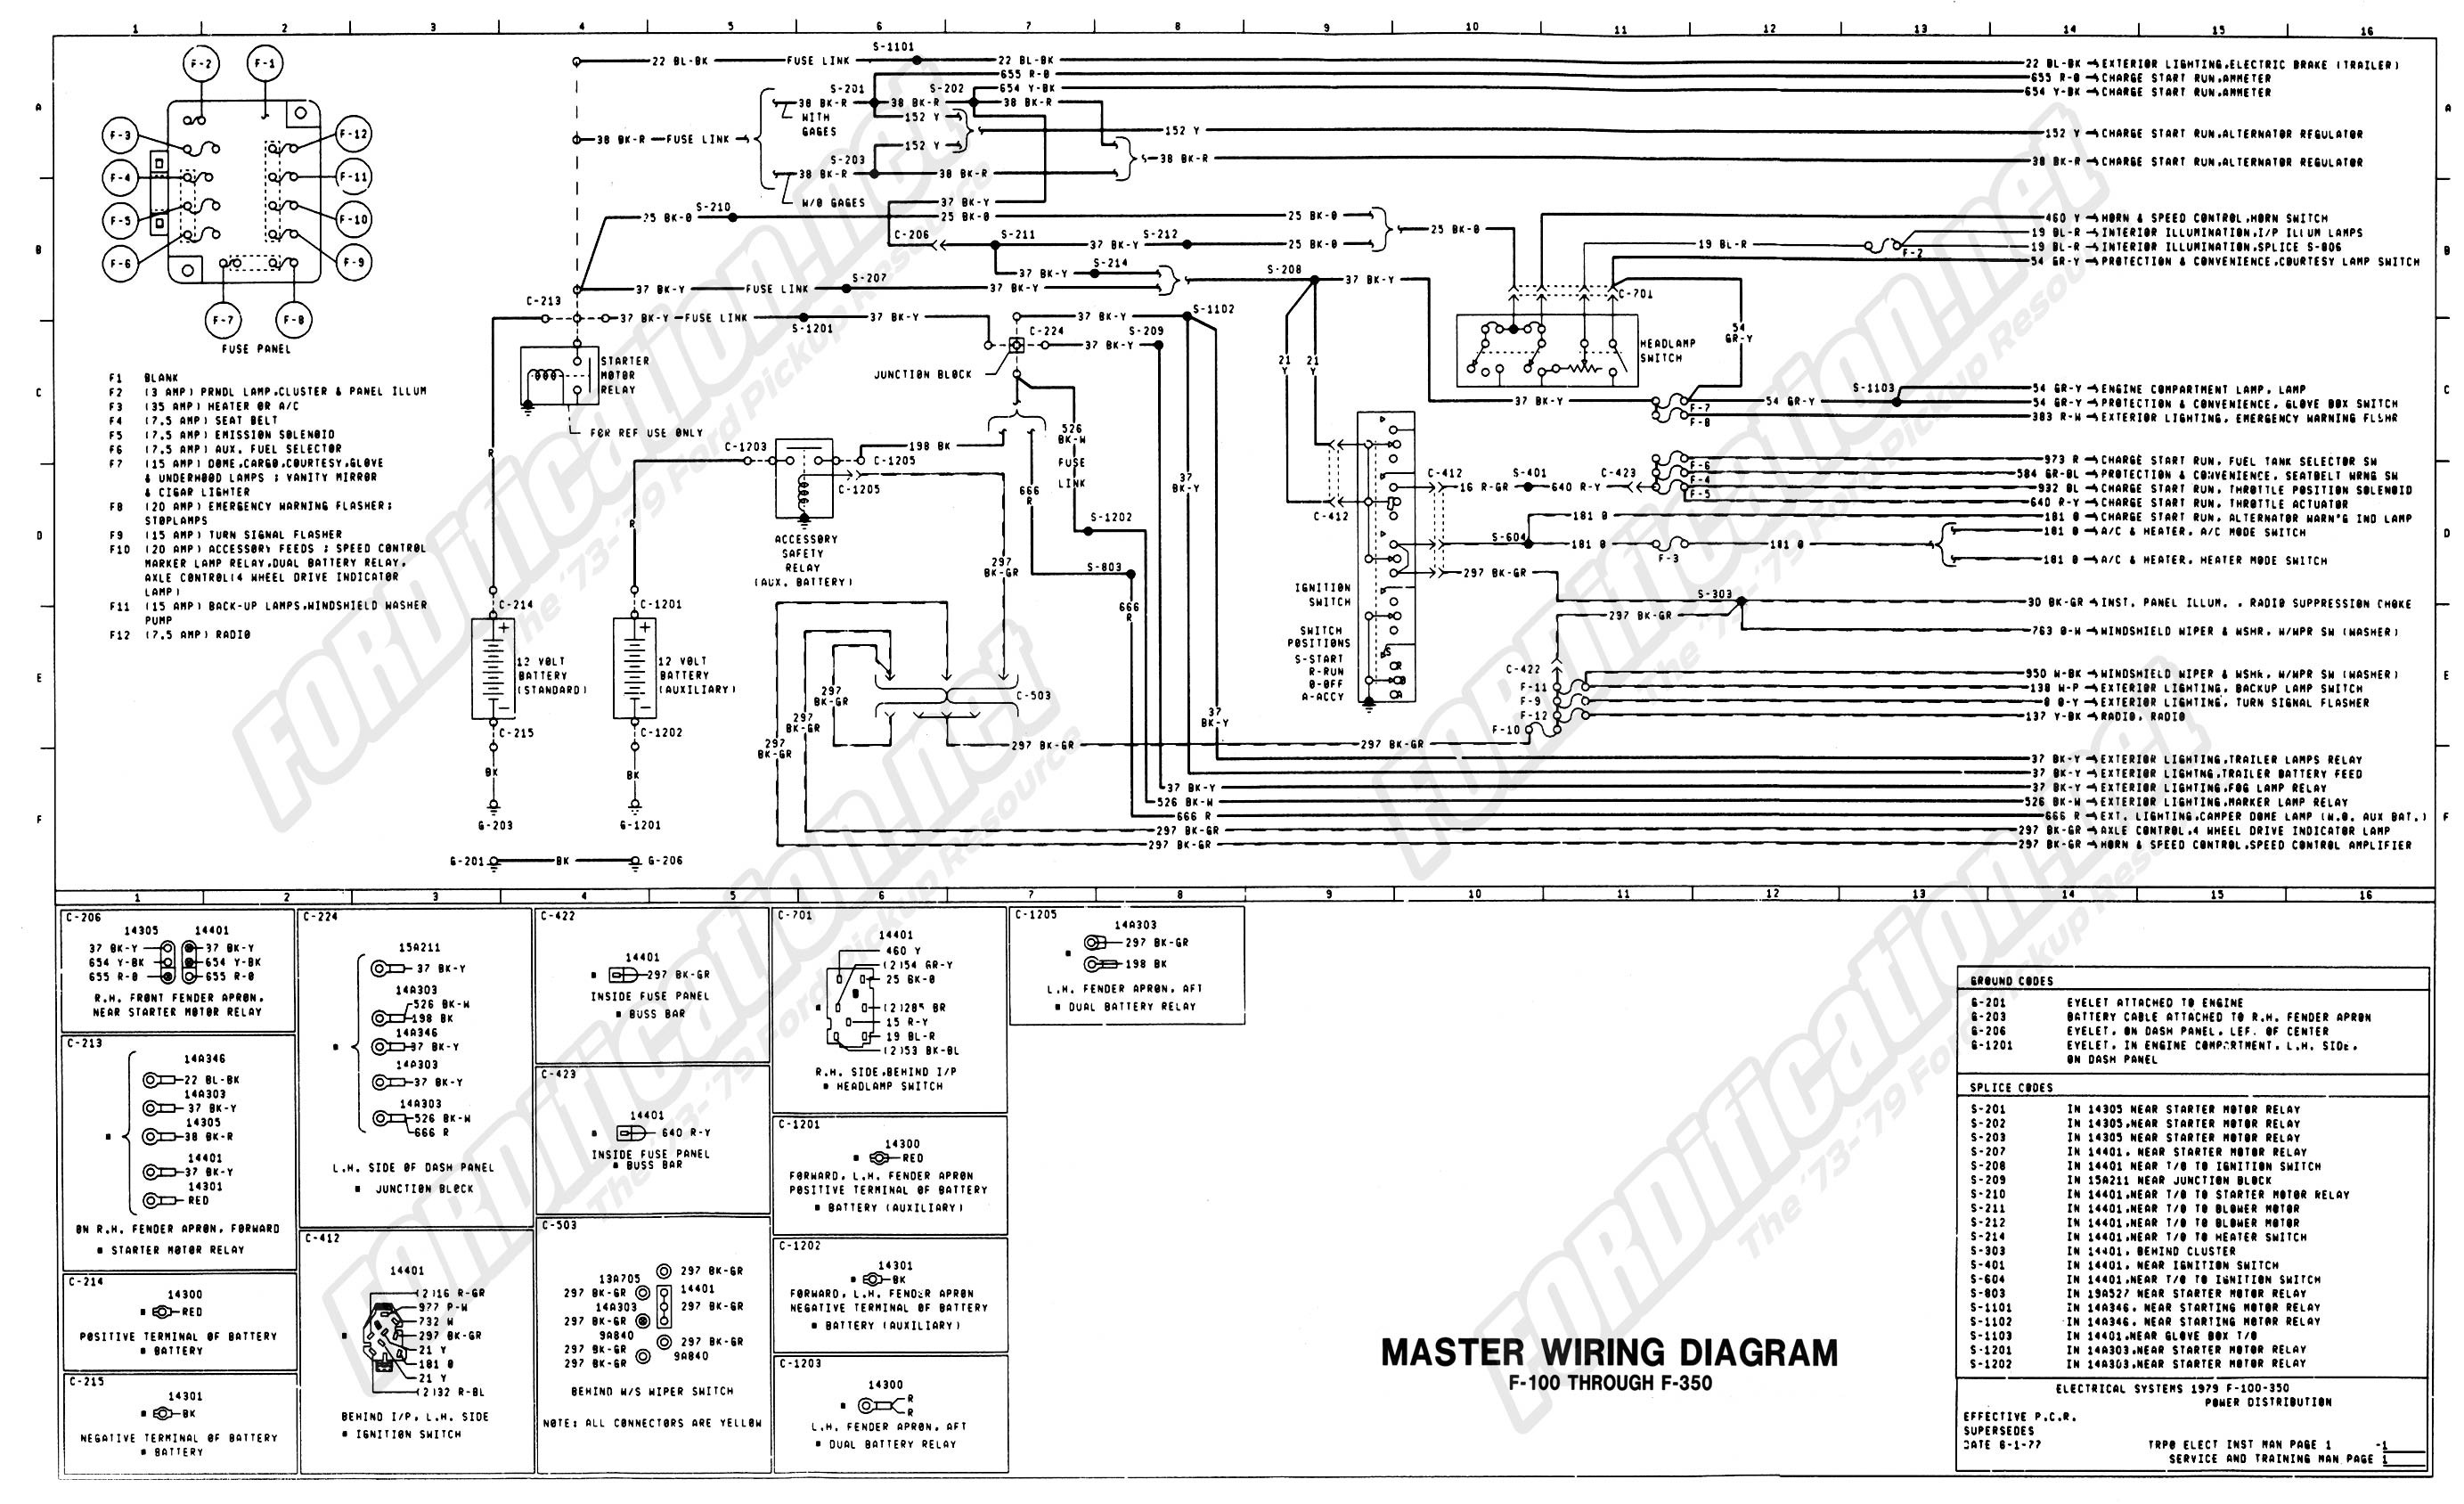 2000 F250 Tail Light Wiring Diagram 1973 1979 ford Truck Wiring Diagrams & Schematics Of 2000 F250 Tail Light Wiring Diagram